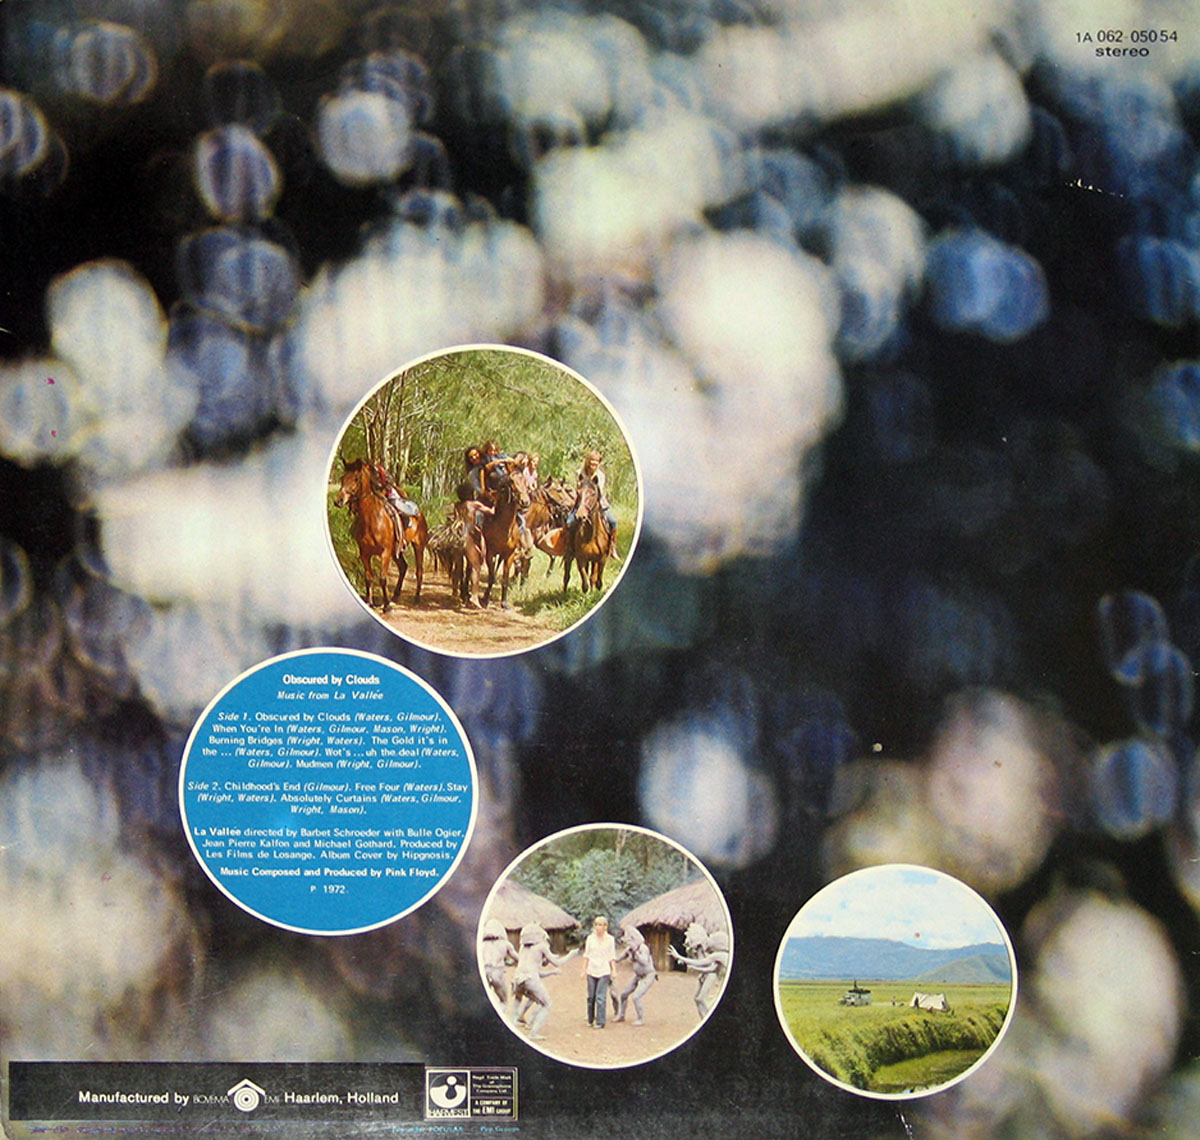 High Resolution Photo #2 PINK FLOYD Obscured Clouds Netherlands